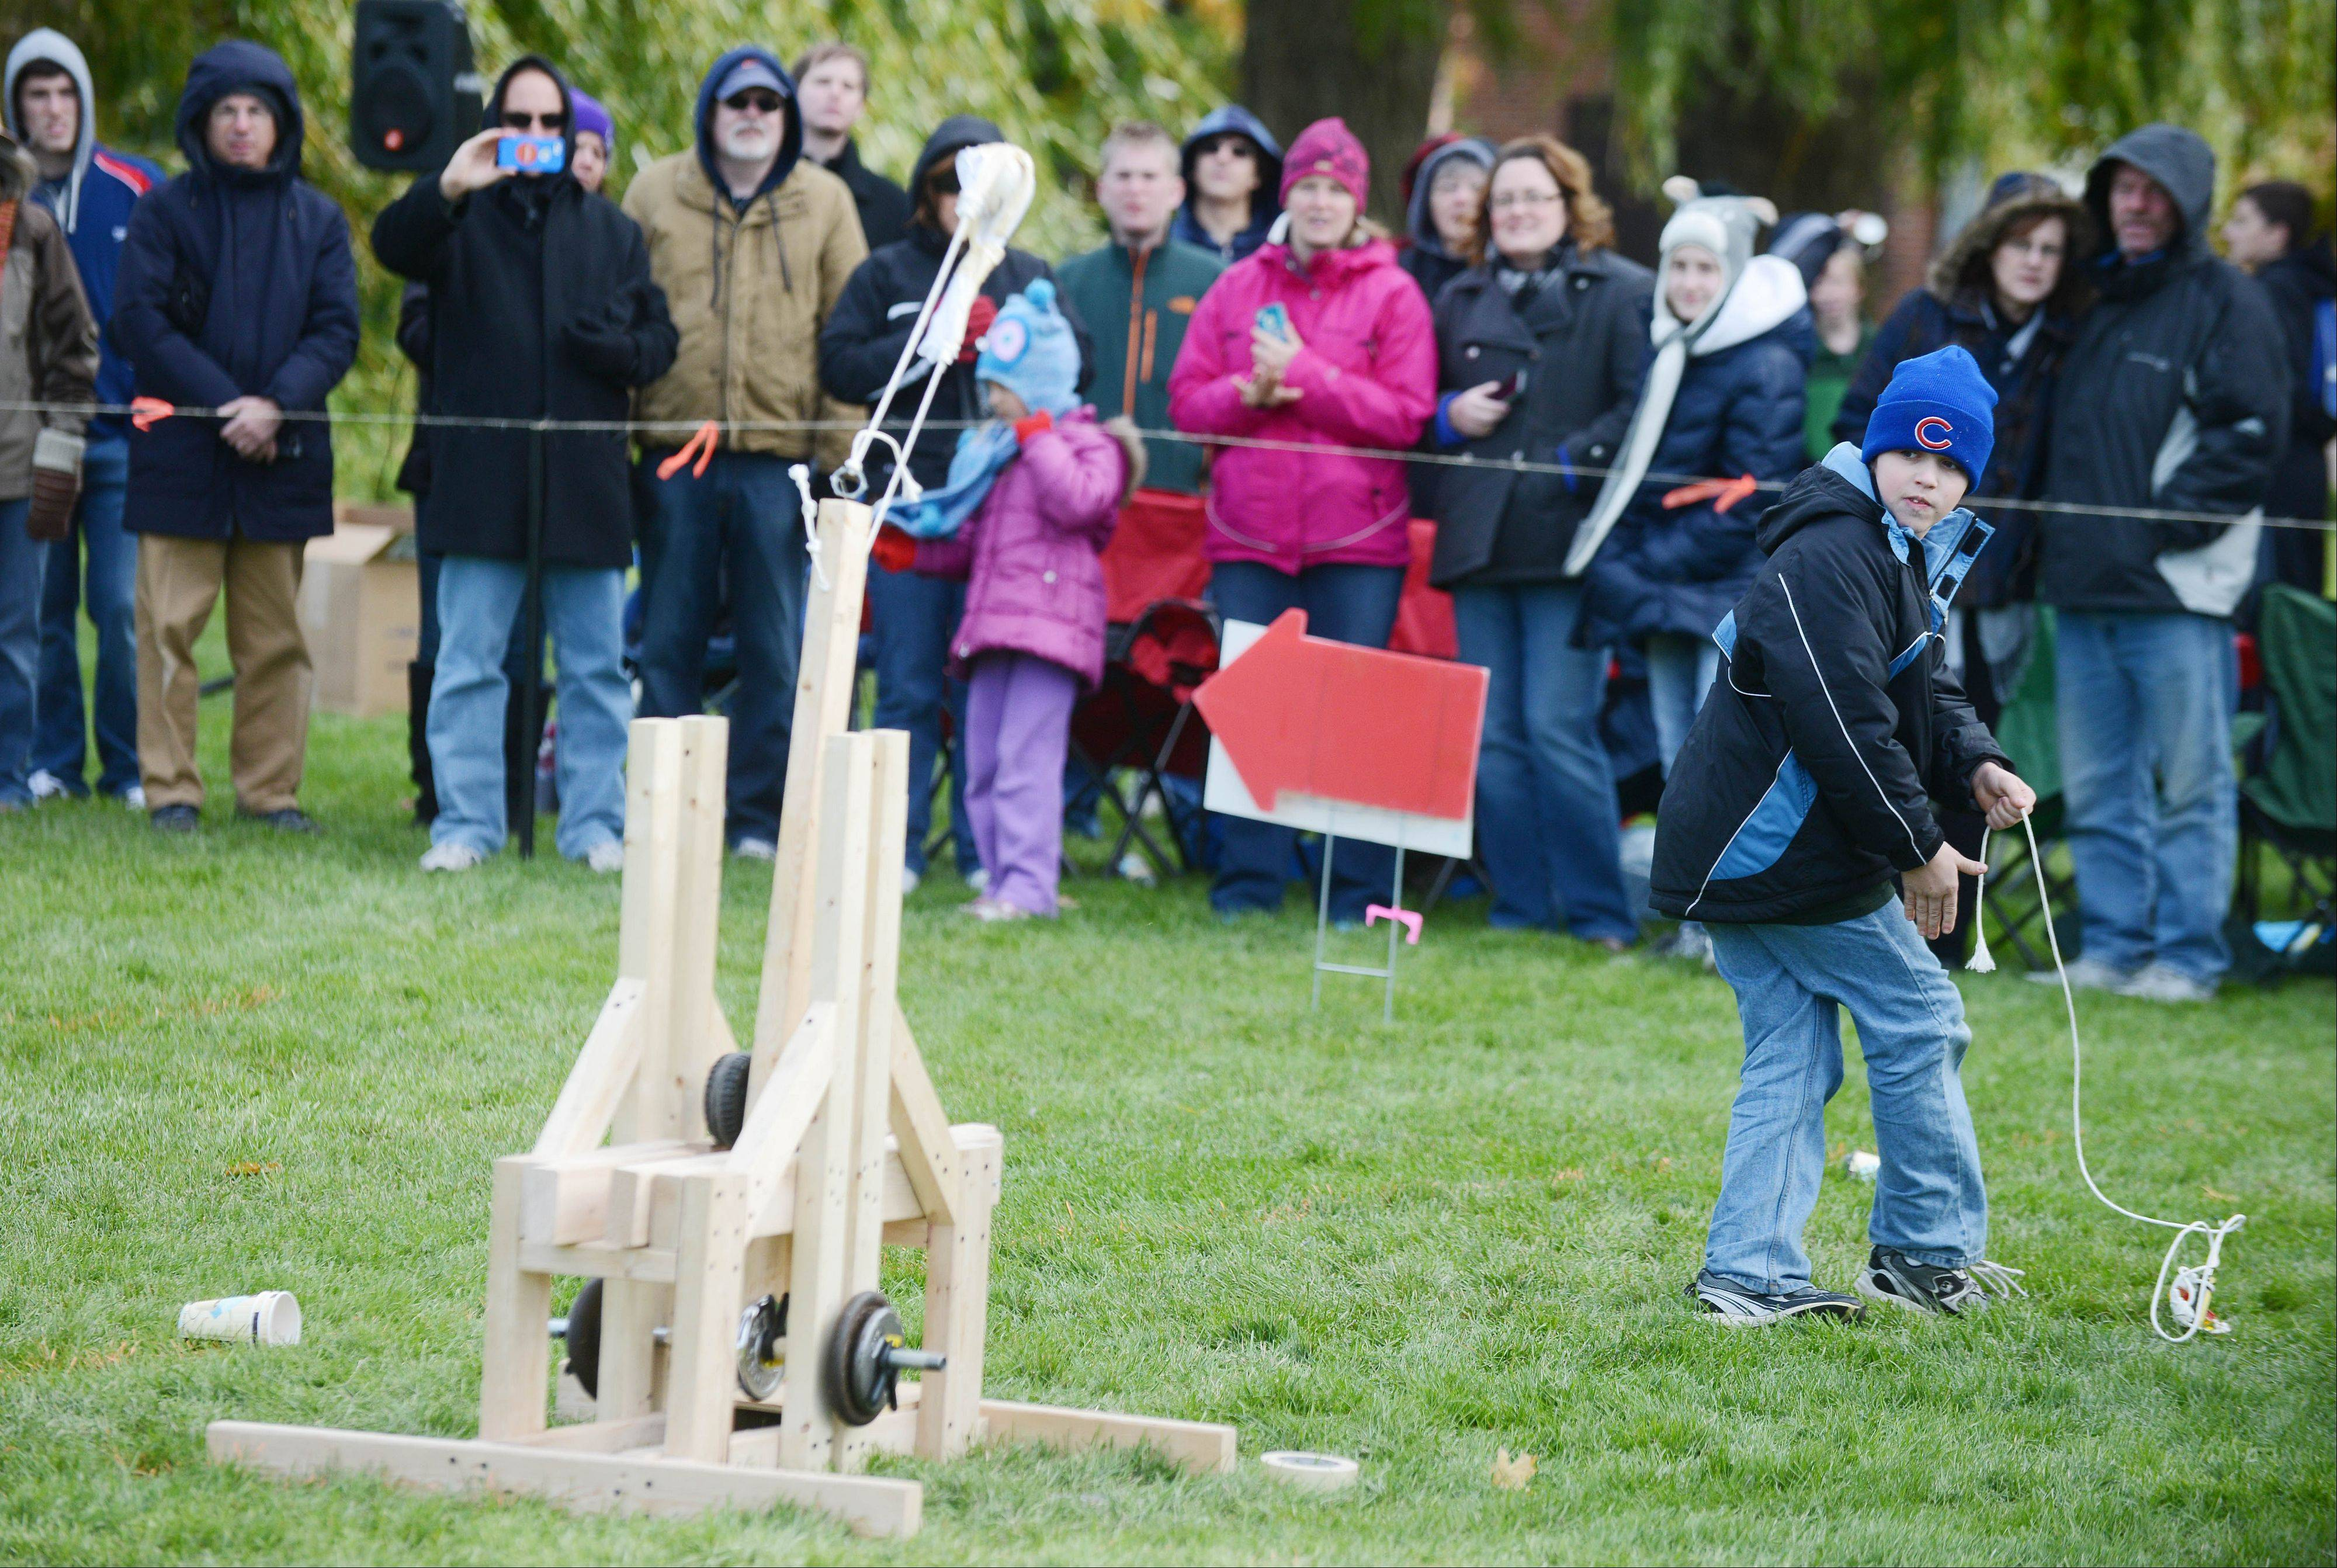 Steven Skulemowski, 11, of Chicago Ridge shoots his catapult during a contest Saturday morning at Cantigny Park in Wheaton. Nineteen teams competed.